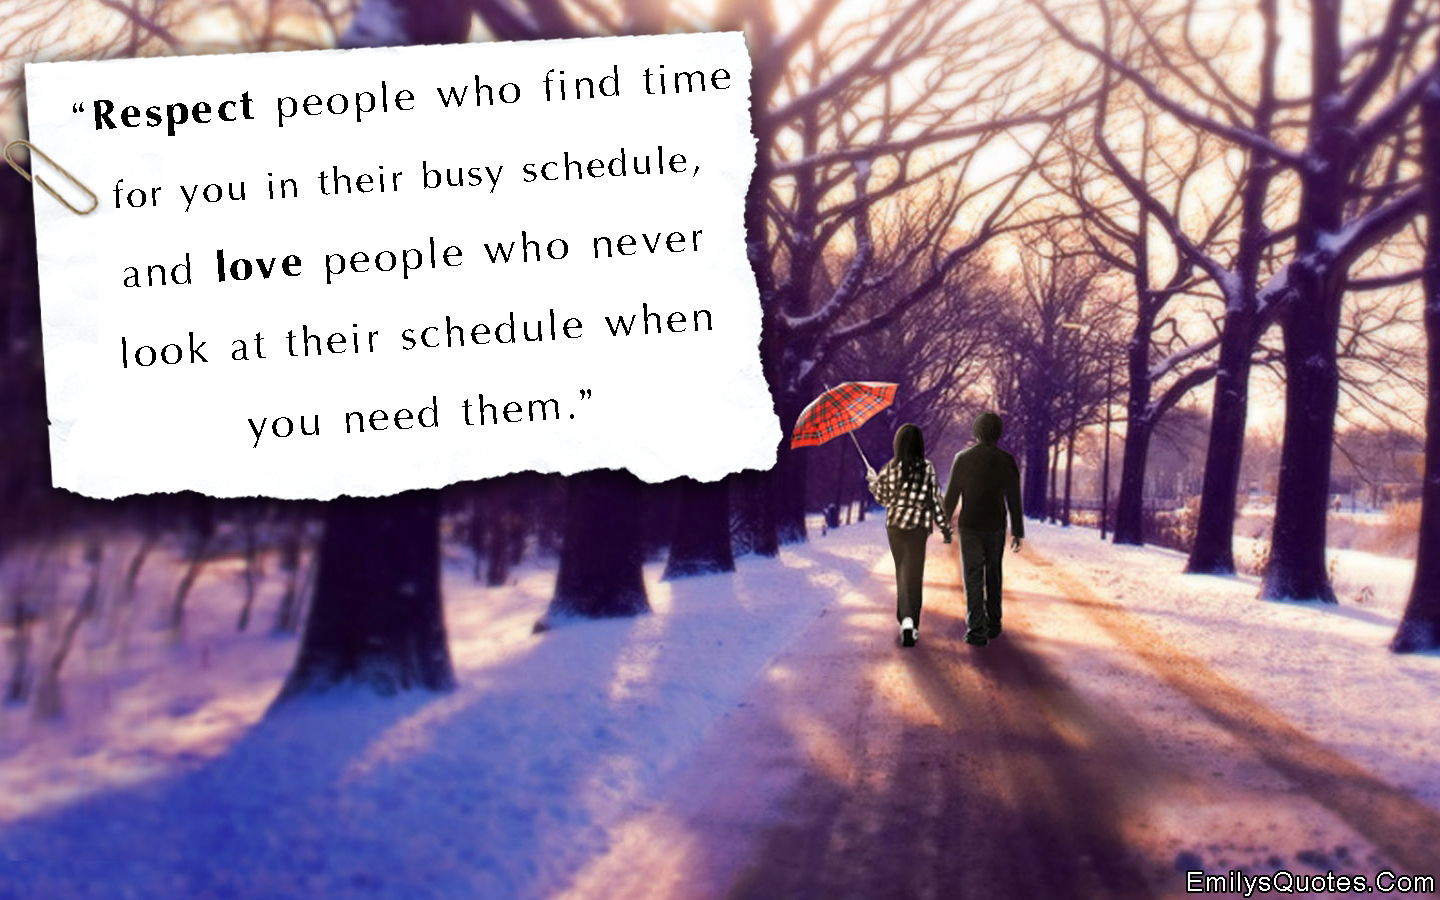 EmilysQuotes.Com - respect, people, time, busy, love, need, relationship